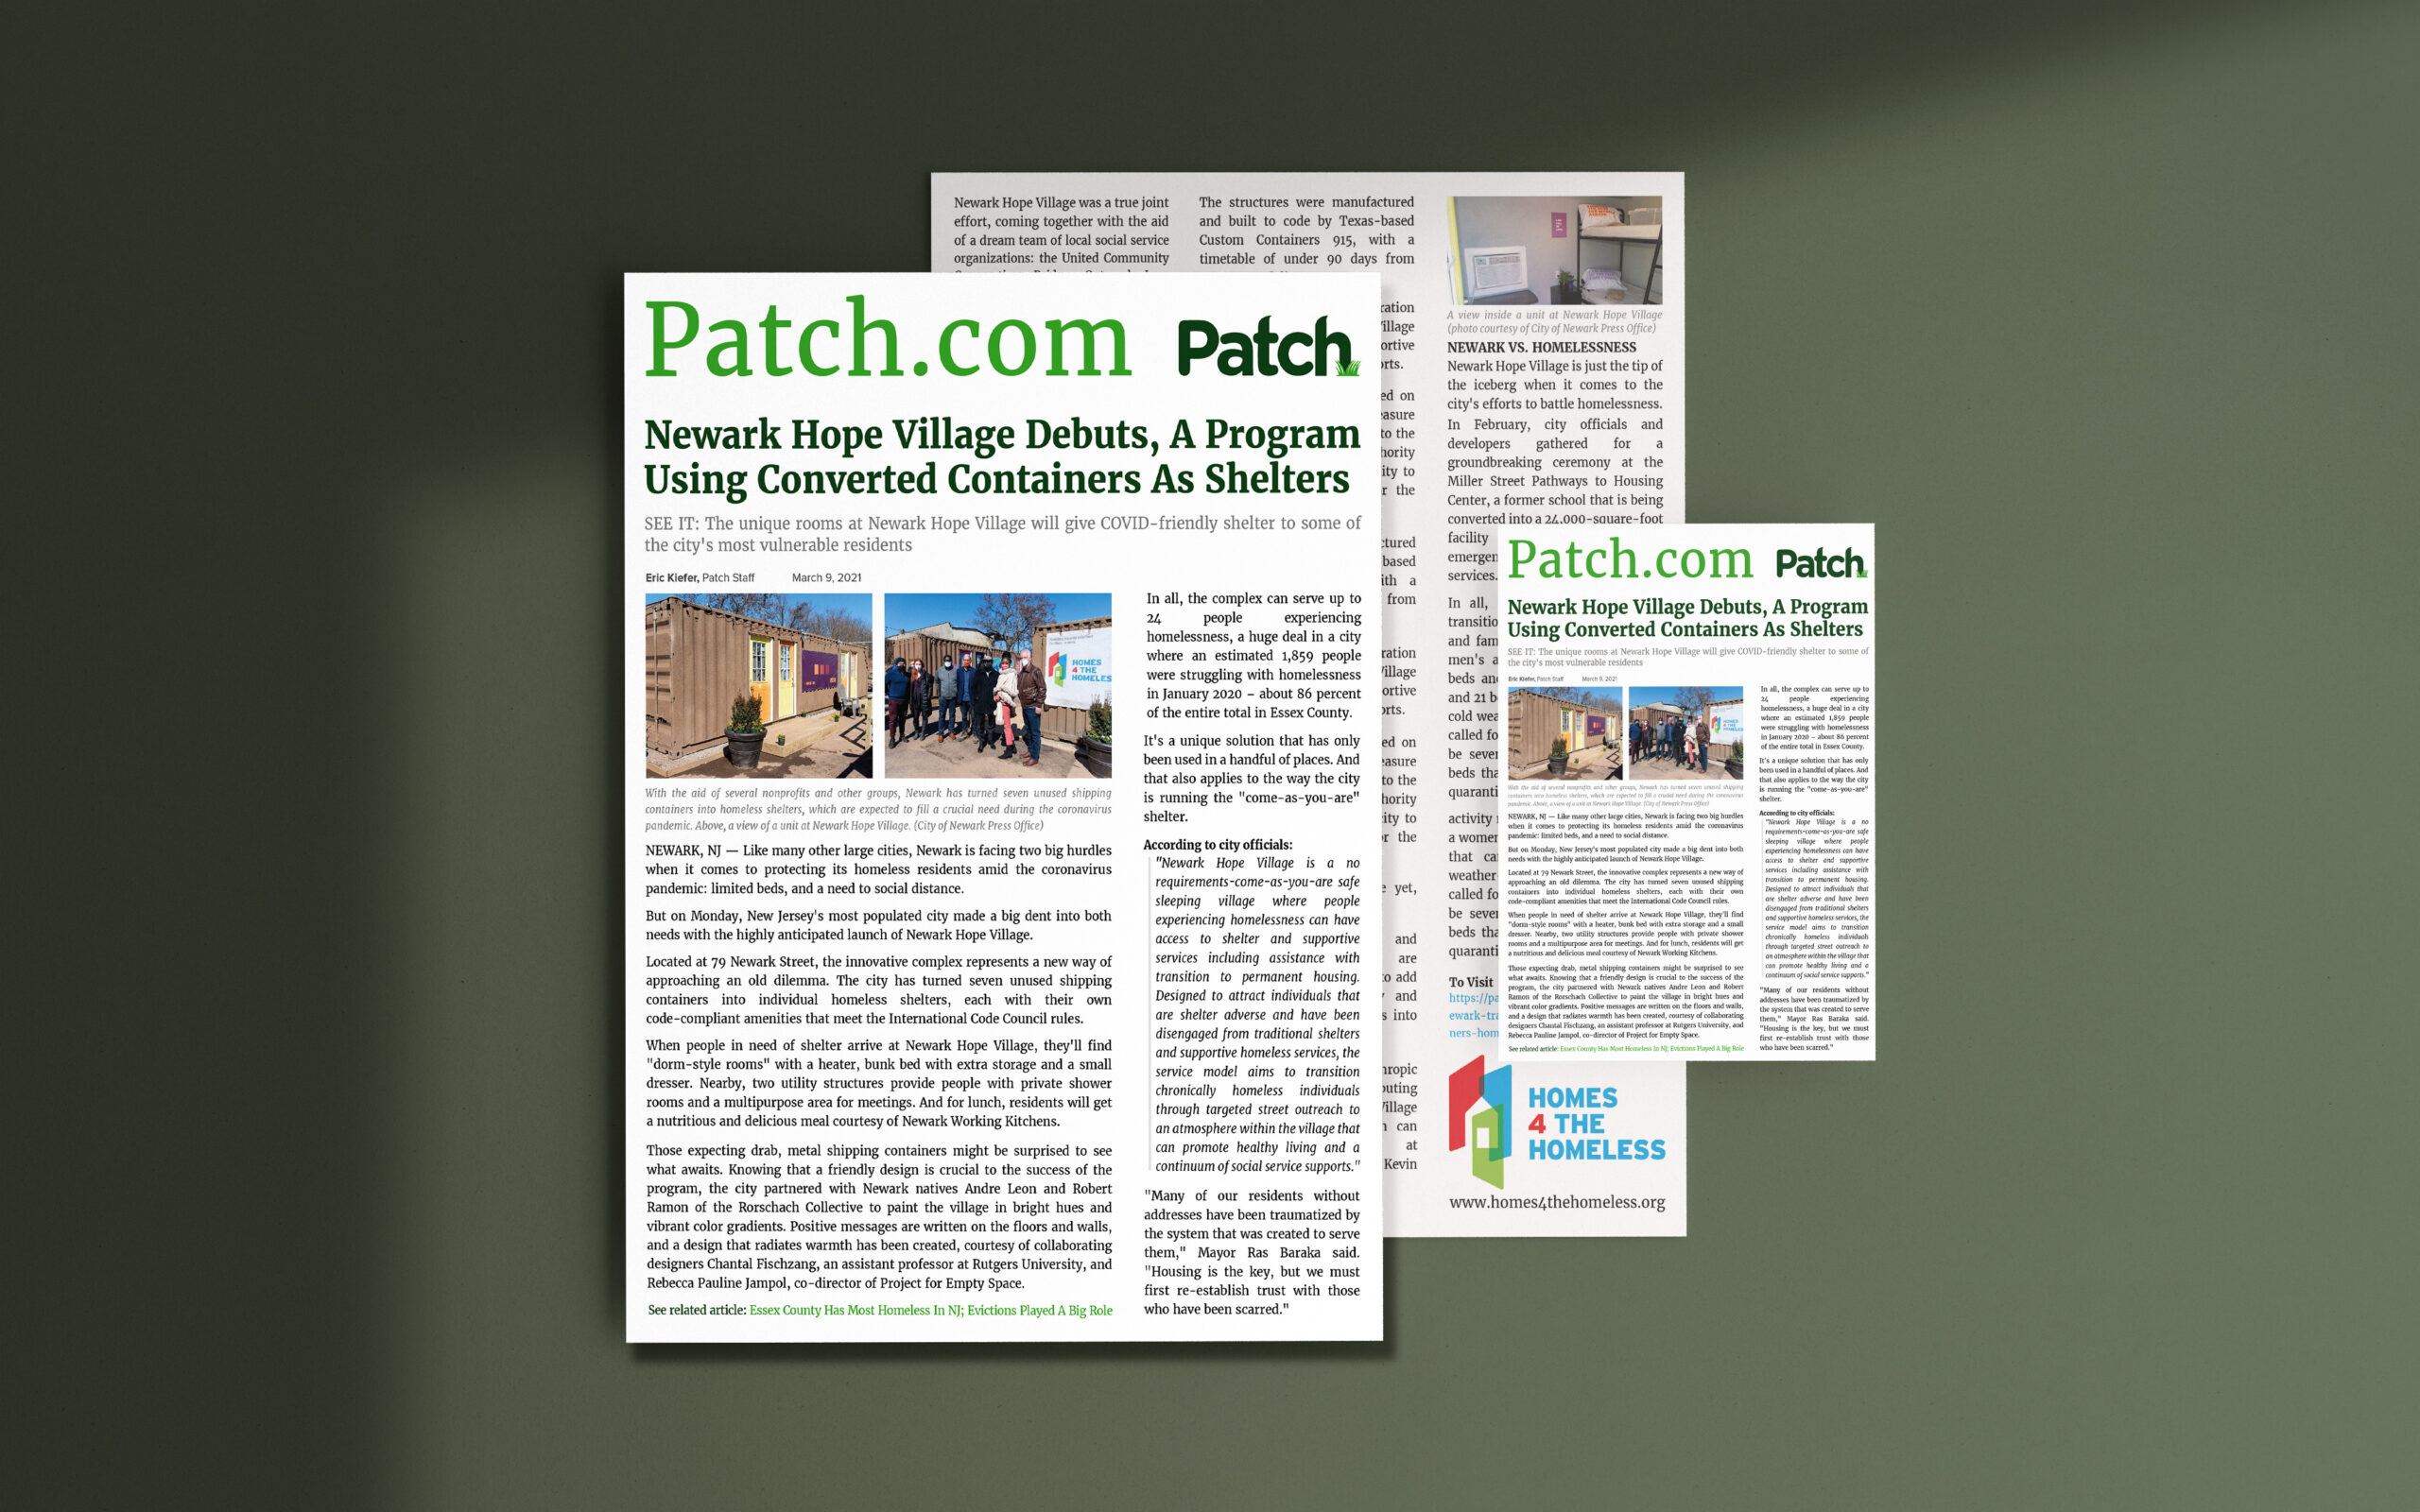 Patch.com Article 9 March 2021 by Eric Kiefer about Newark Hope Village